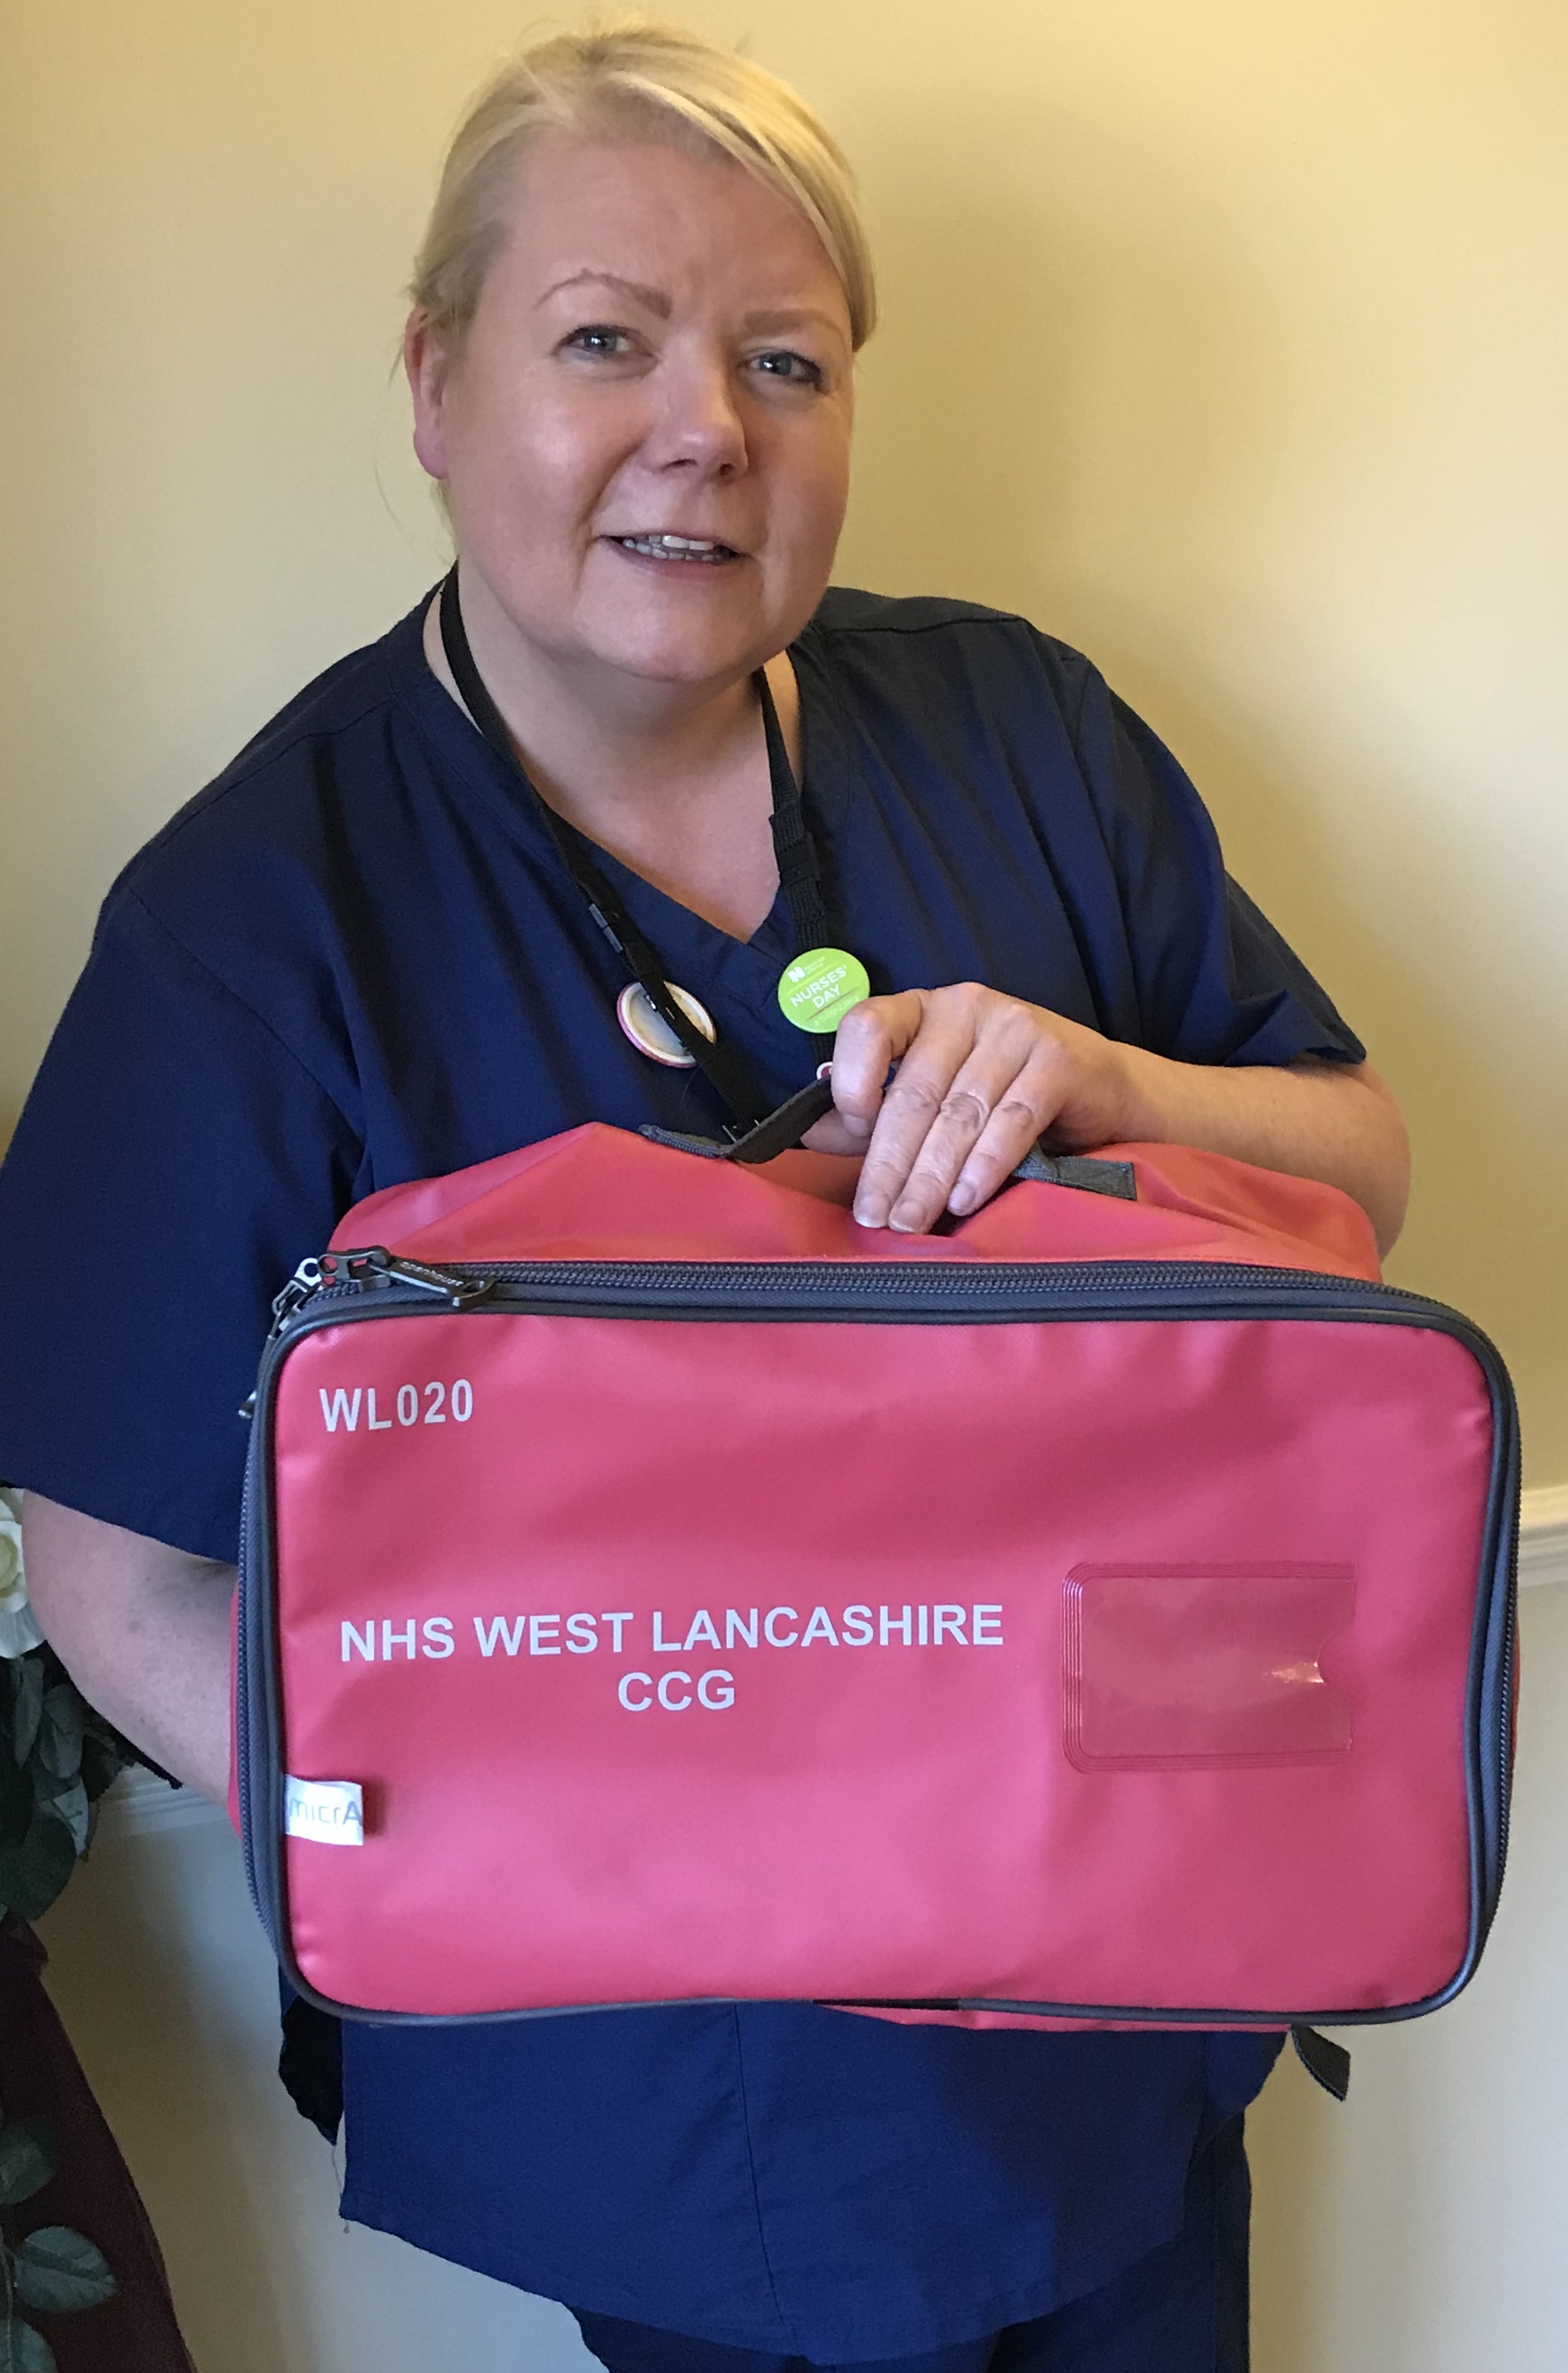 , Innovative red bag rolled out across West Lancashire, Skem News - The Top Source for Skelmersdale News